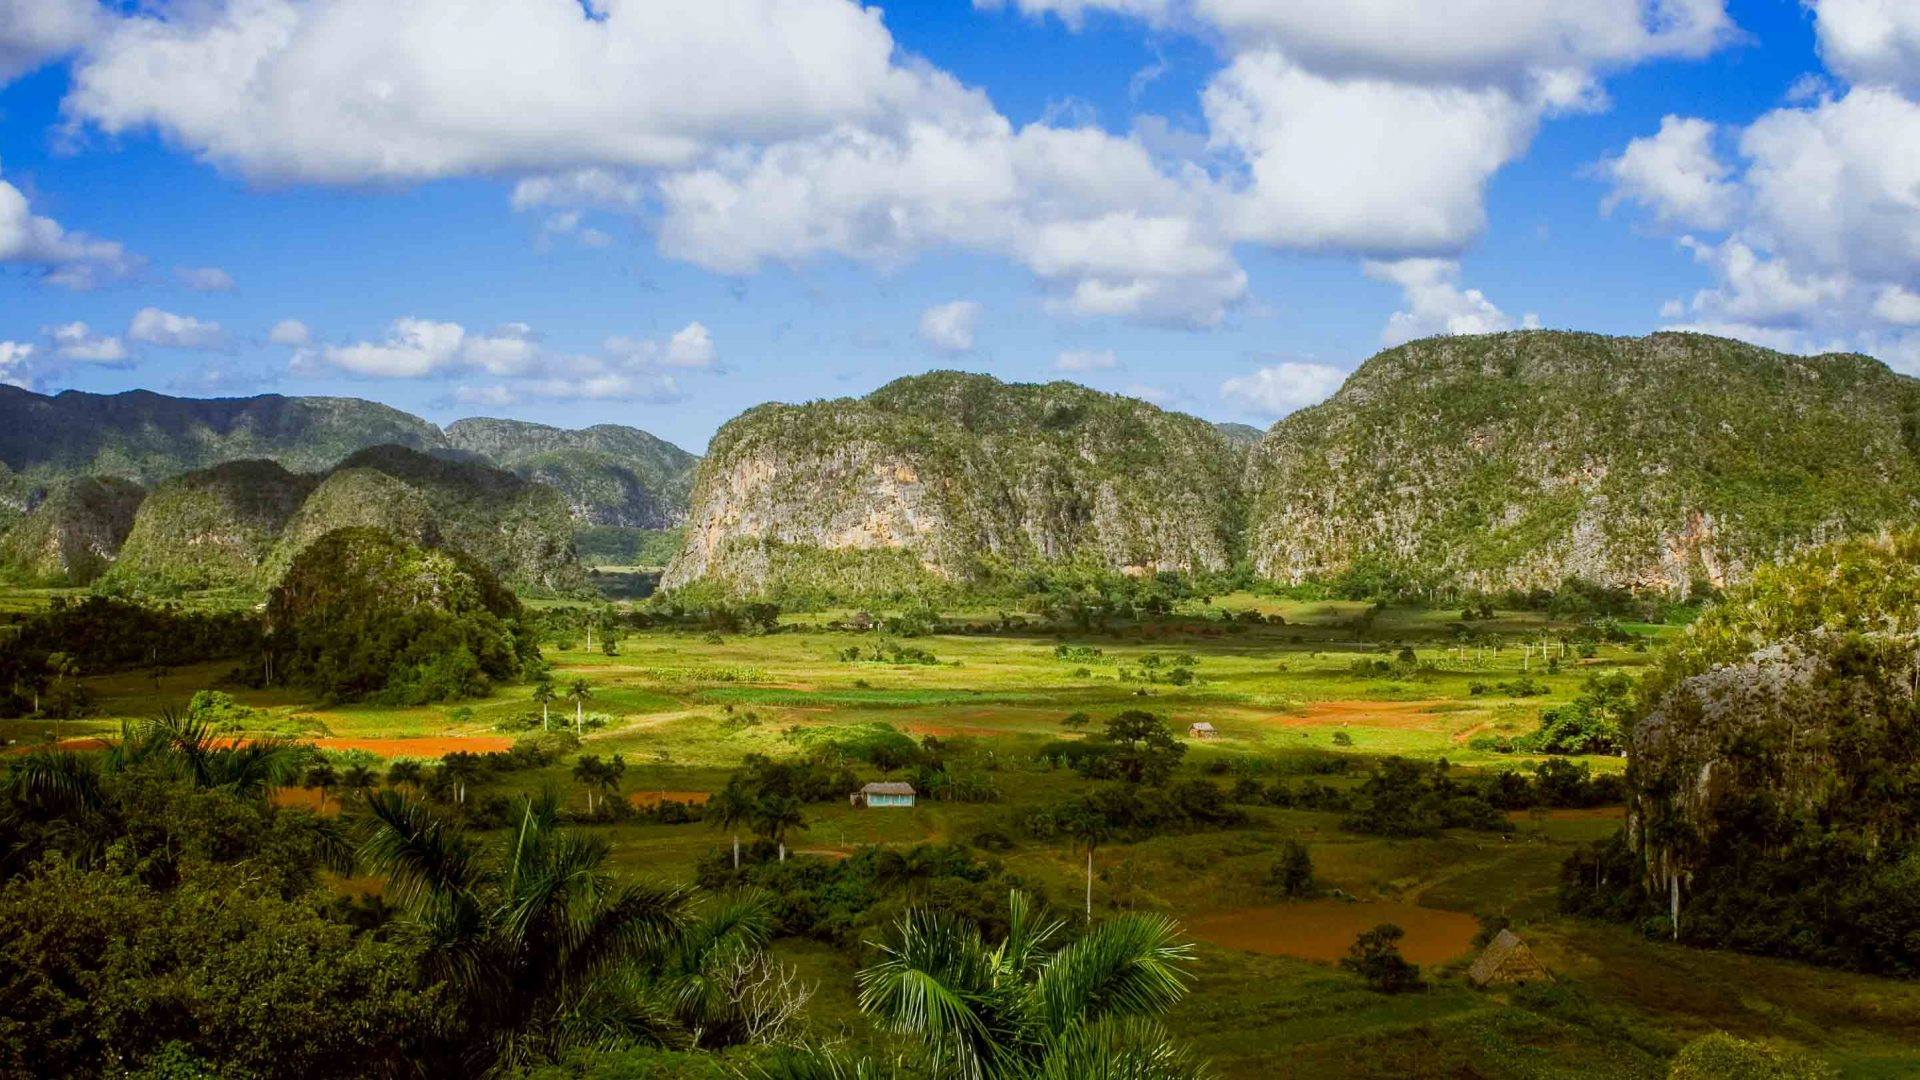 The verdant valleys of Cuba are a draw card for travelers.